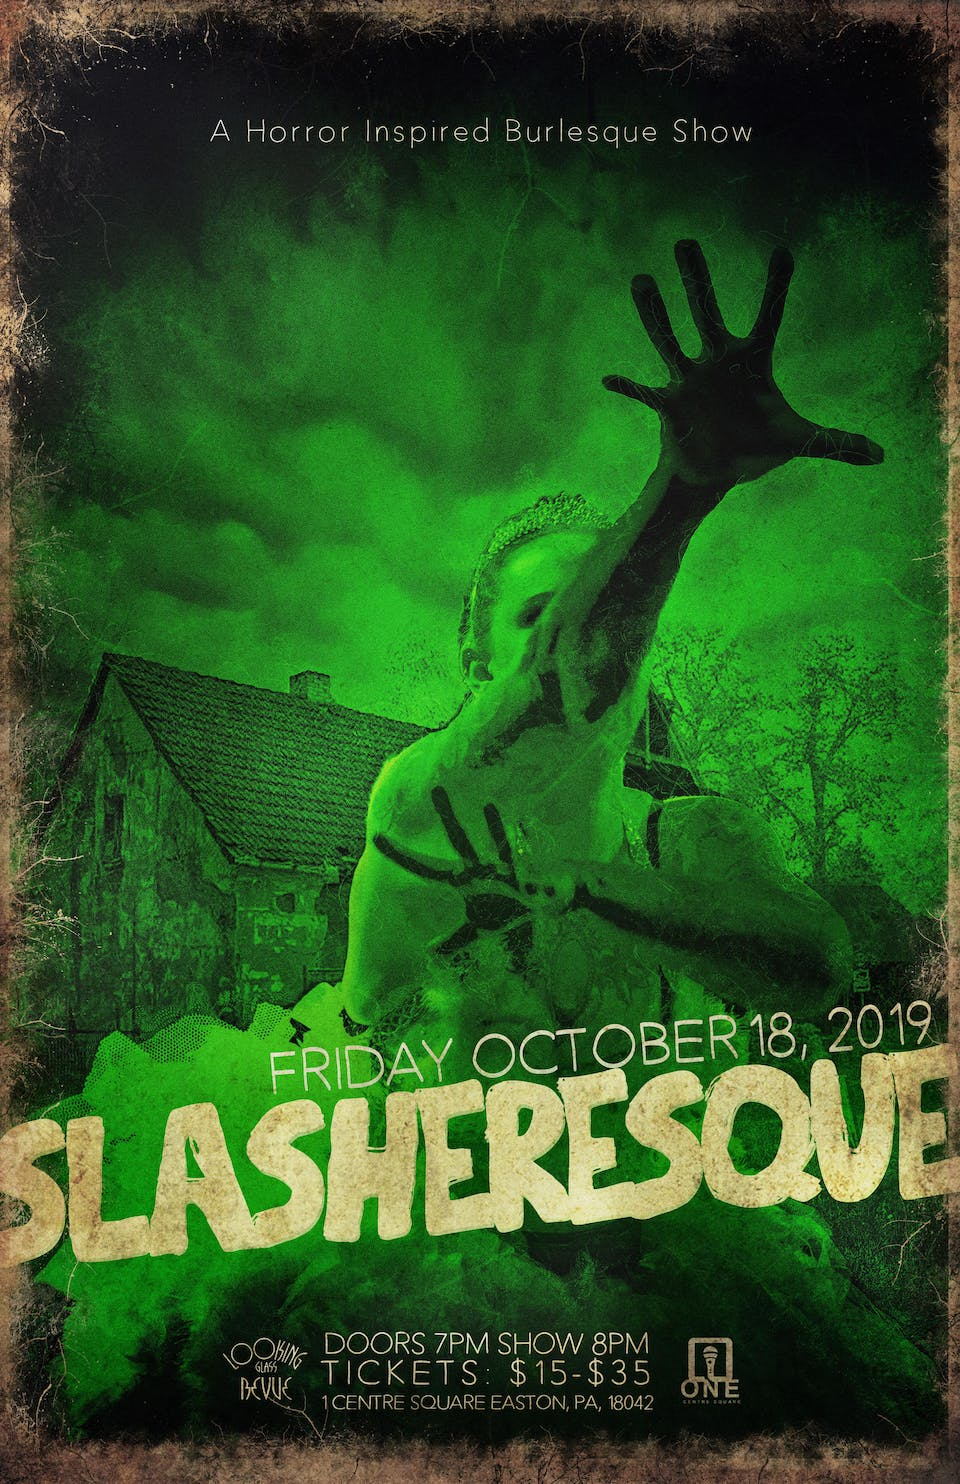 Slasheresque, A Horror Inspired Burlesque Show